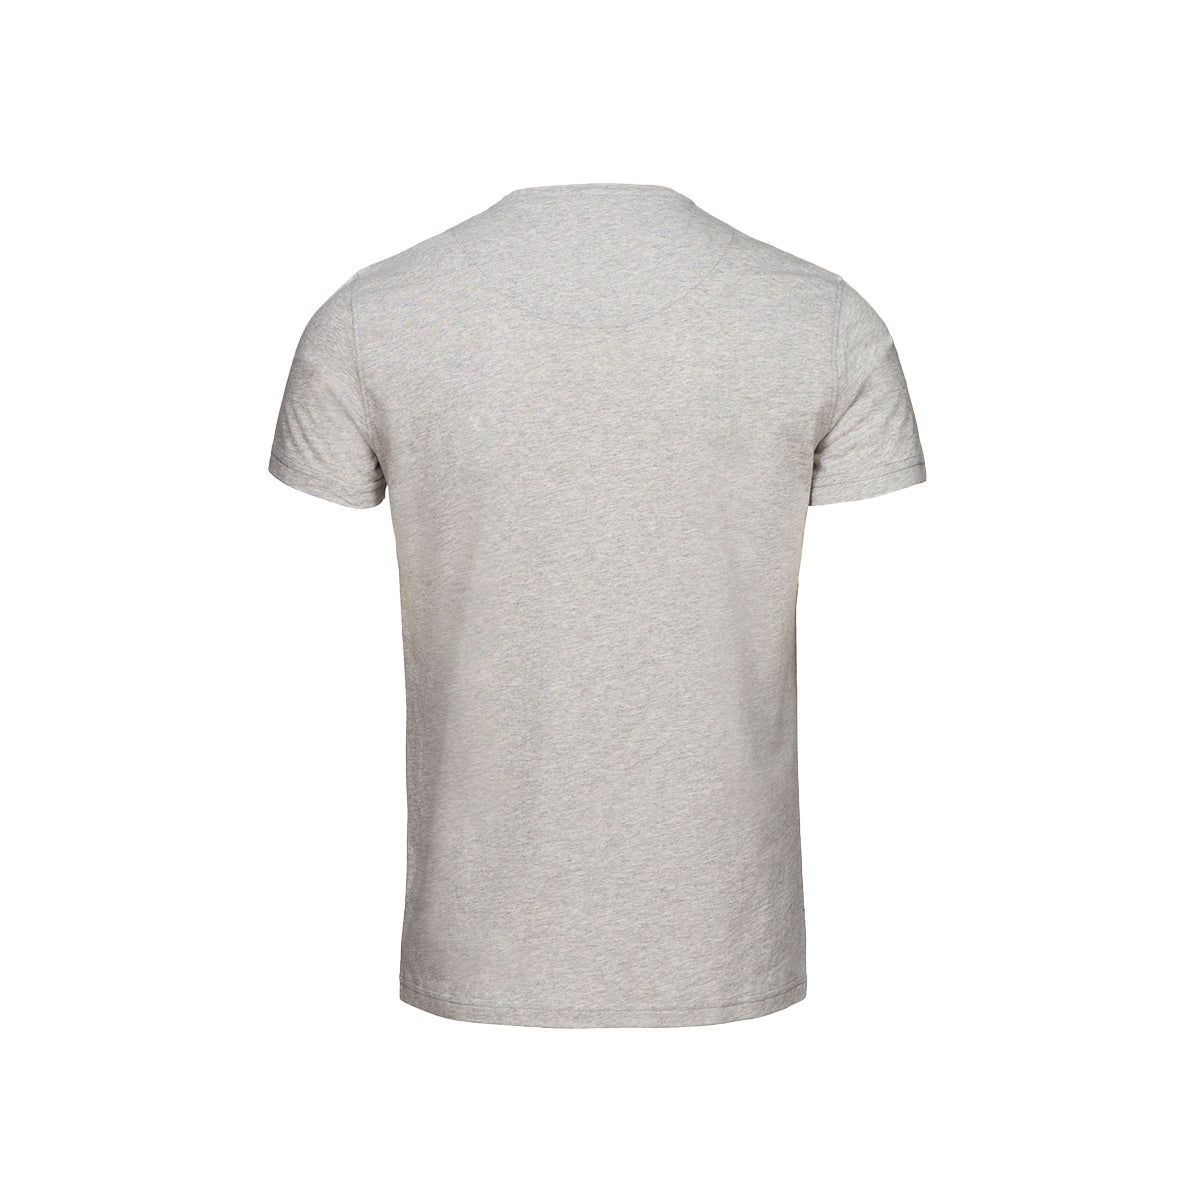 Caleia Logo T-Shirt - background::white,variant::light grey